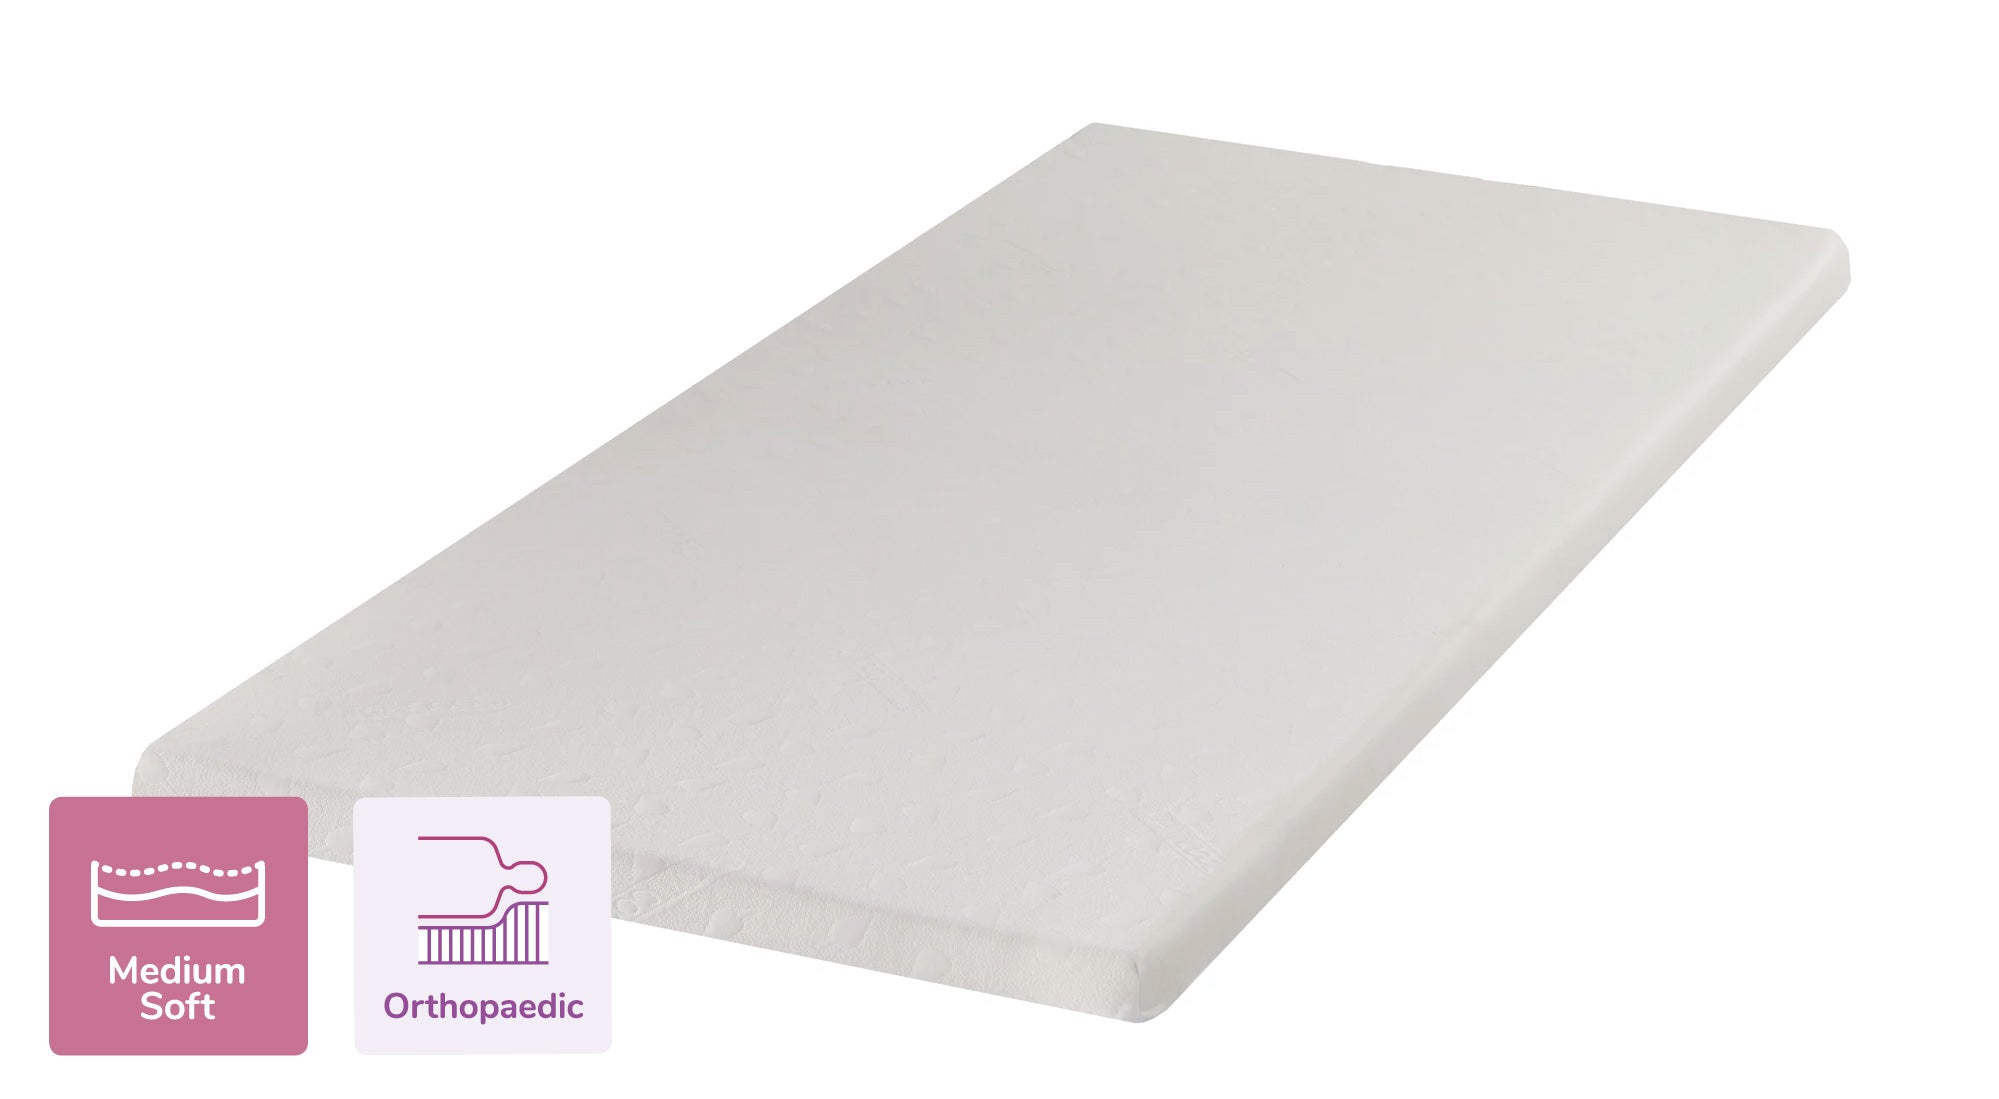 2 Quot Gelflex Temperature Cooling Topper By Dr Sleep Dr